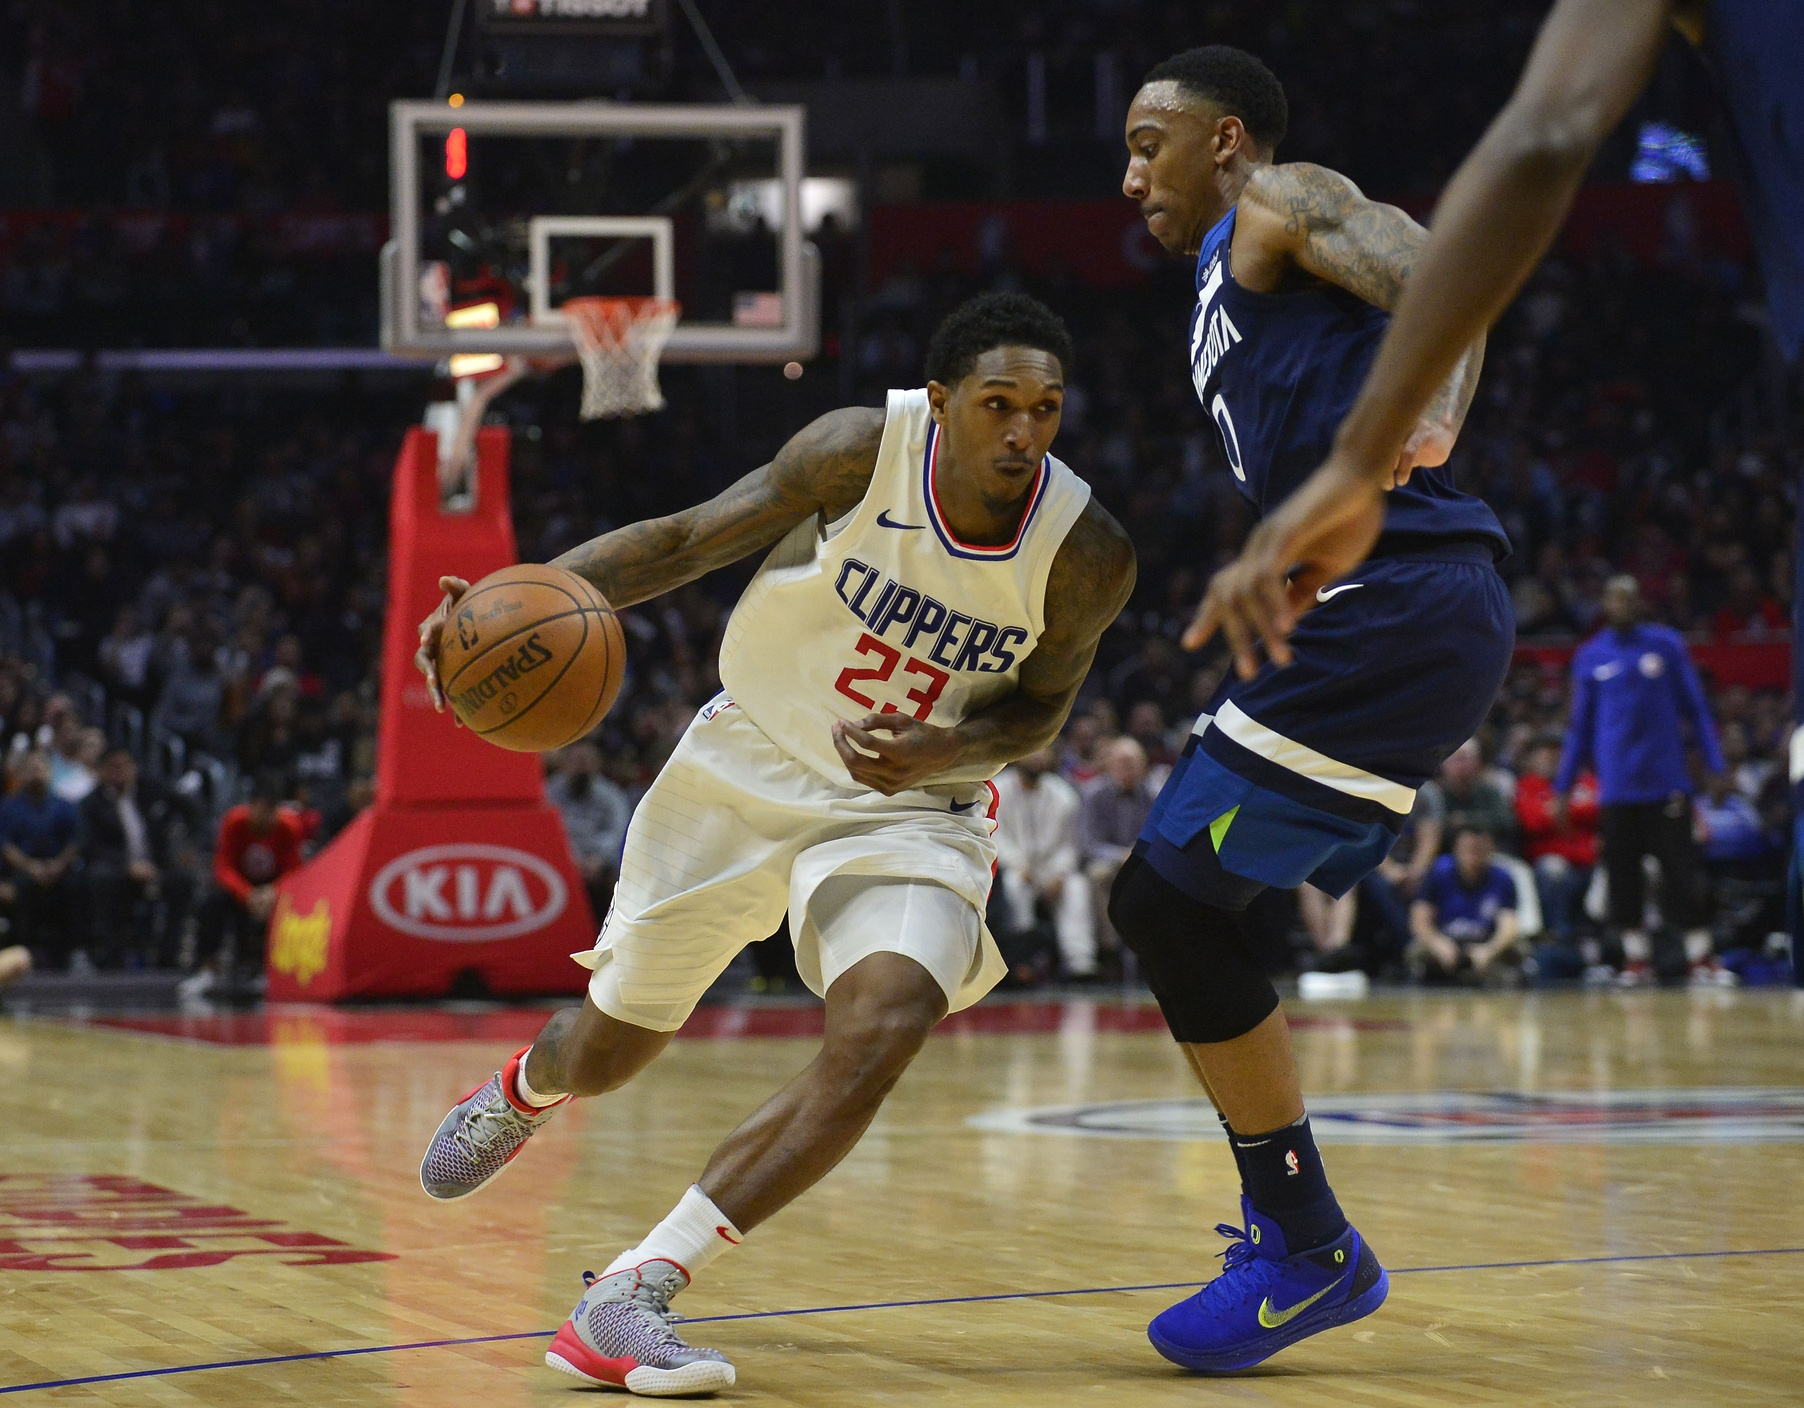 Clippers face Timberwolves in most pivotal game of the season